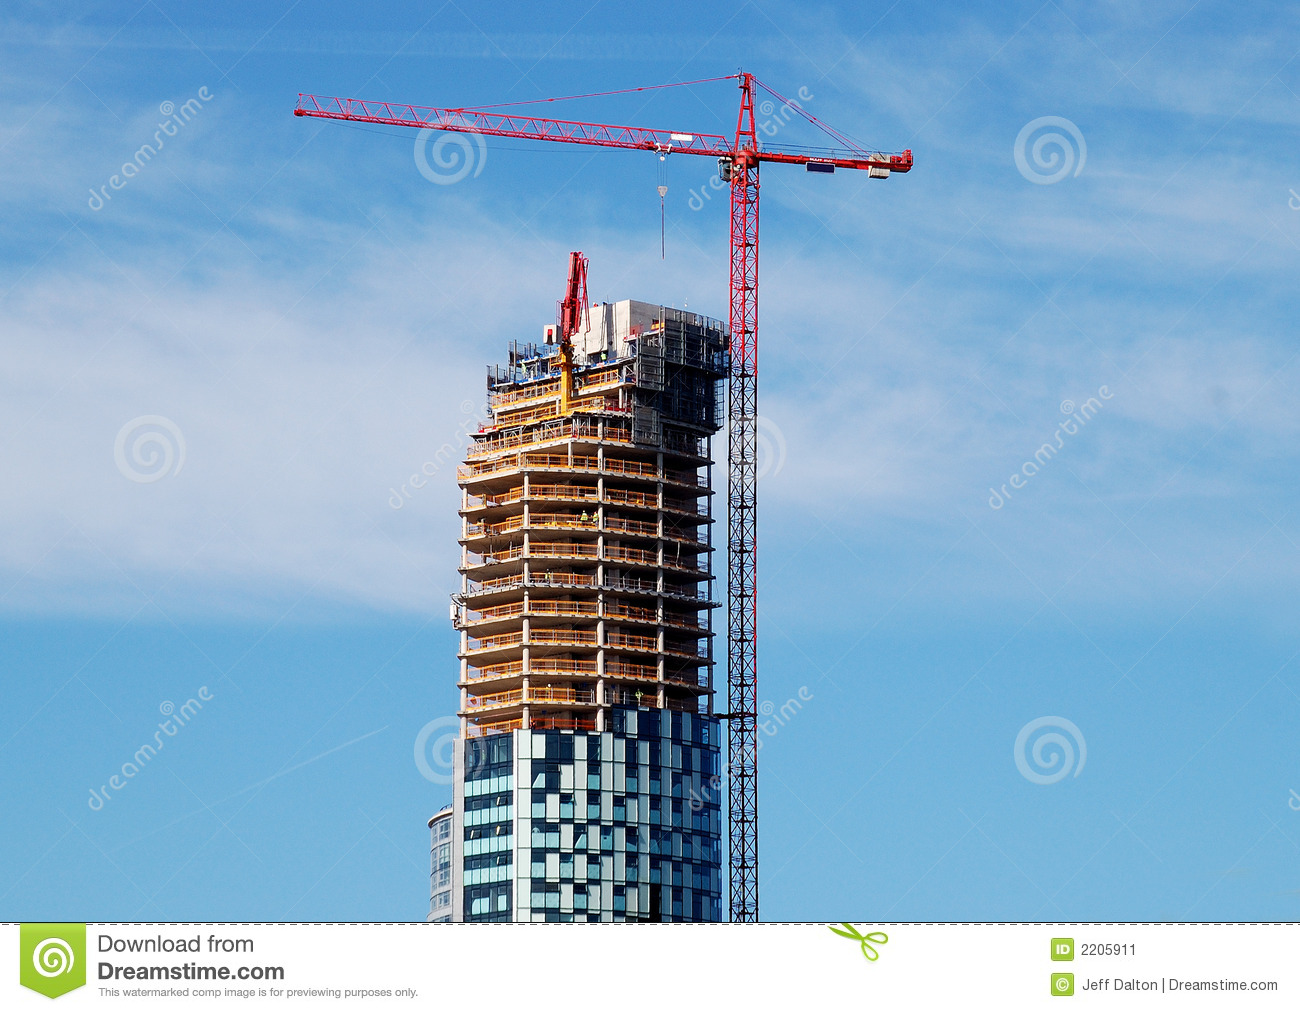 Construction Cranes are going up but would you buy a new condo?